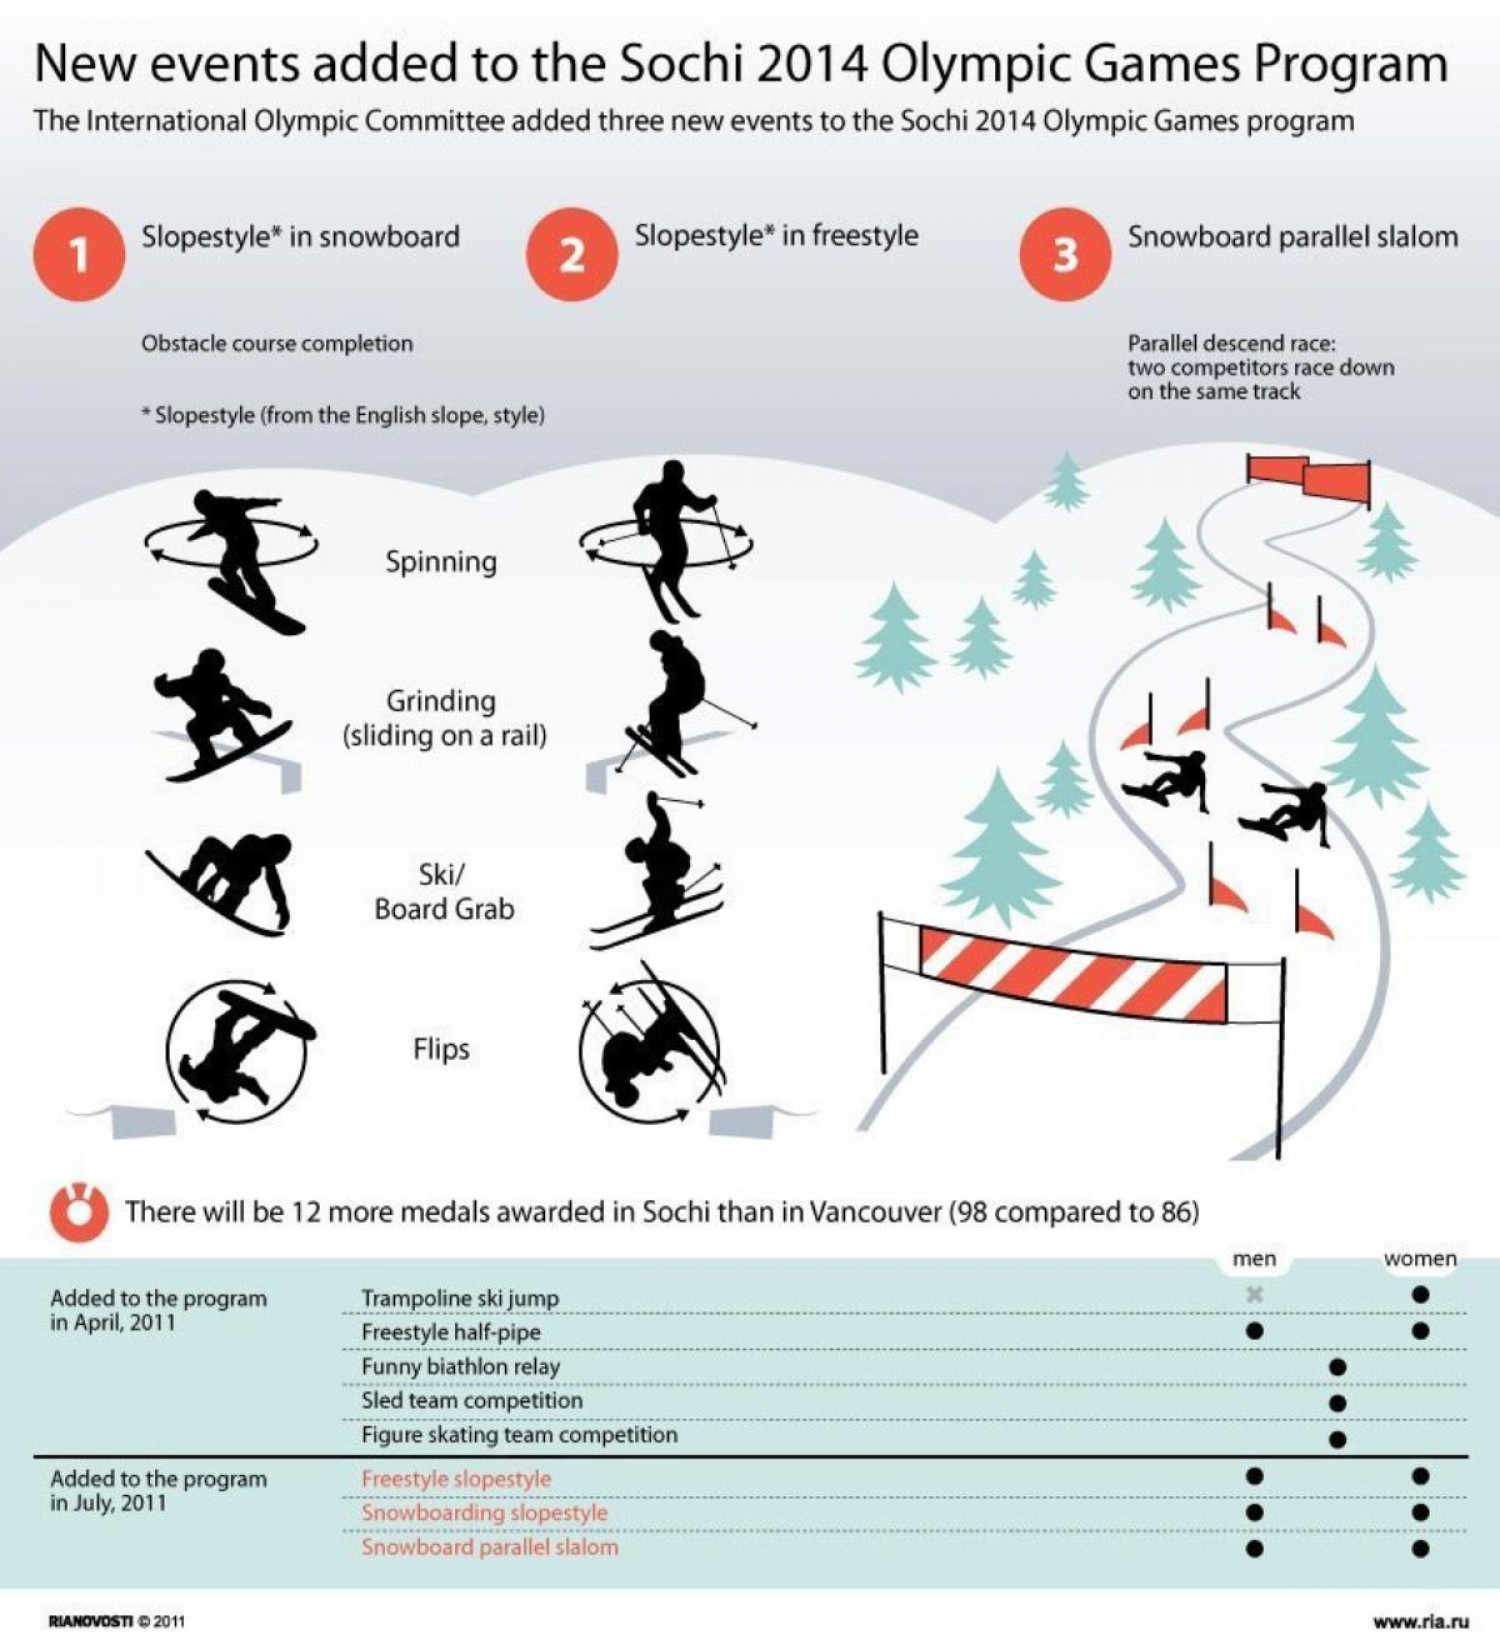 New Events Added to the Sochi 2014 Olympic Games Program Infographic